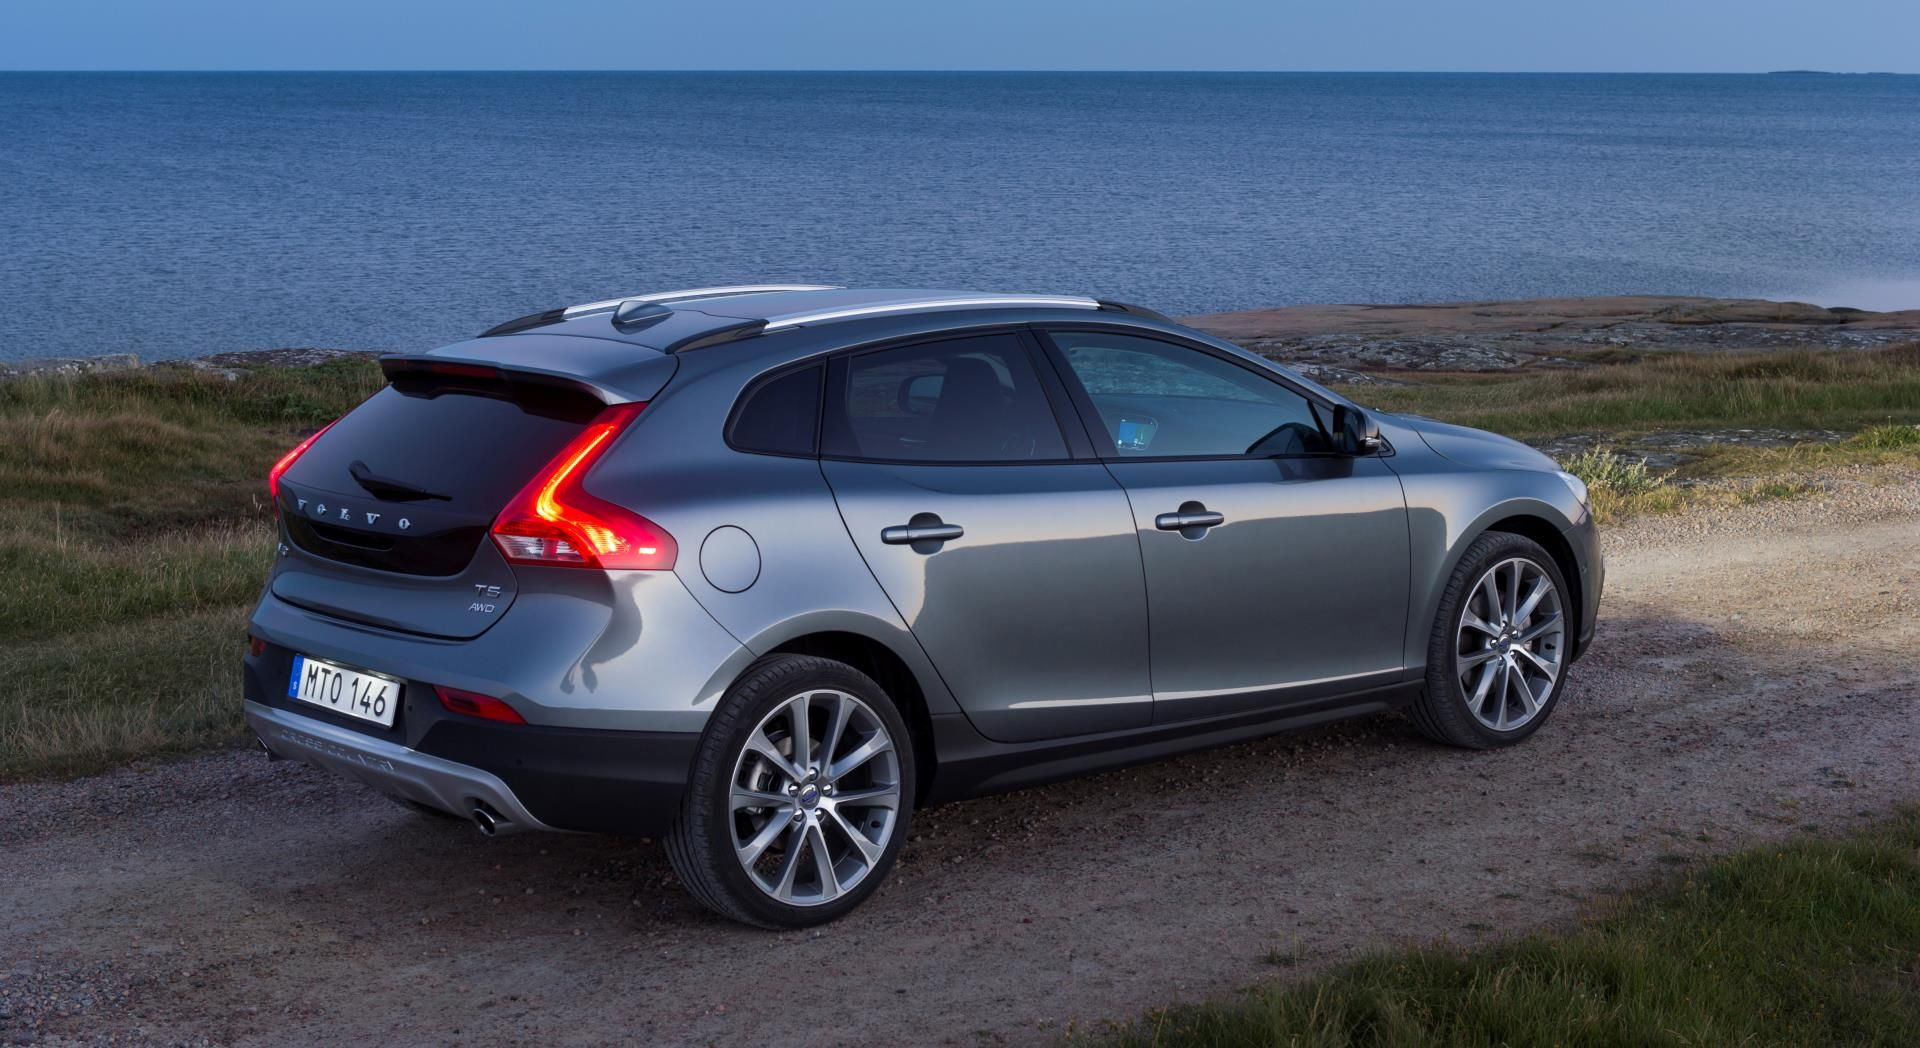 2016 S Volvo V40 Cross Country Autos Carro Deportivos Coches